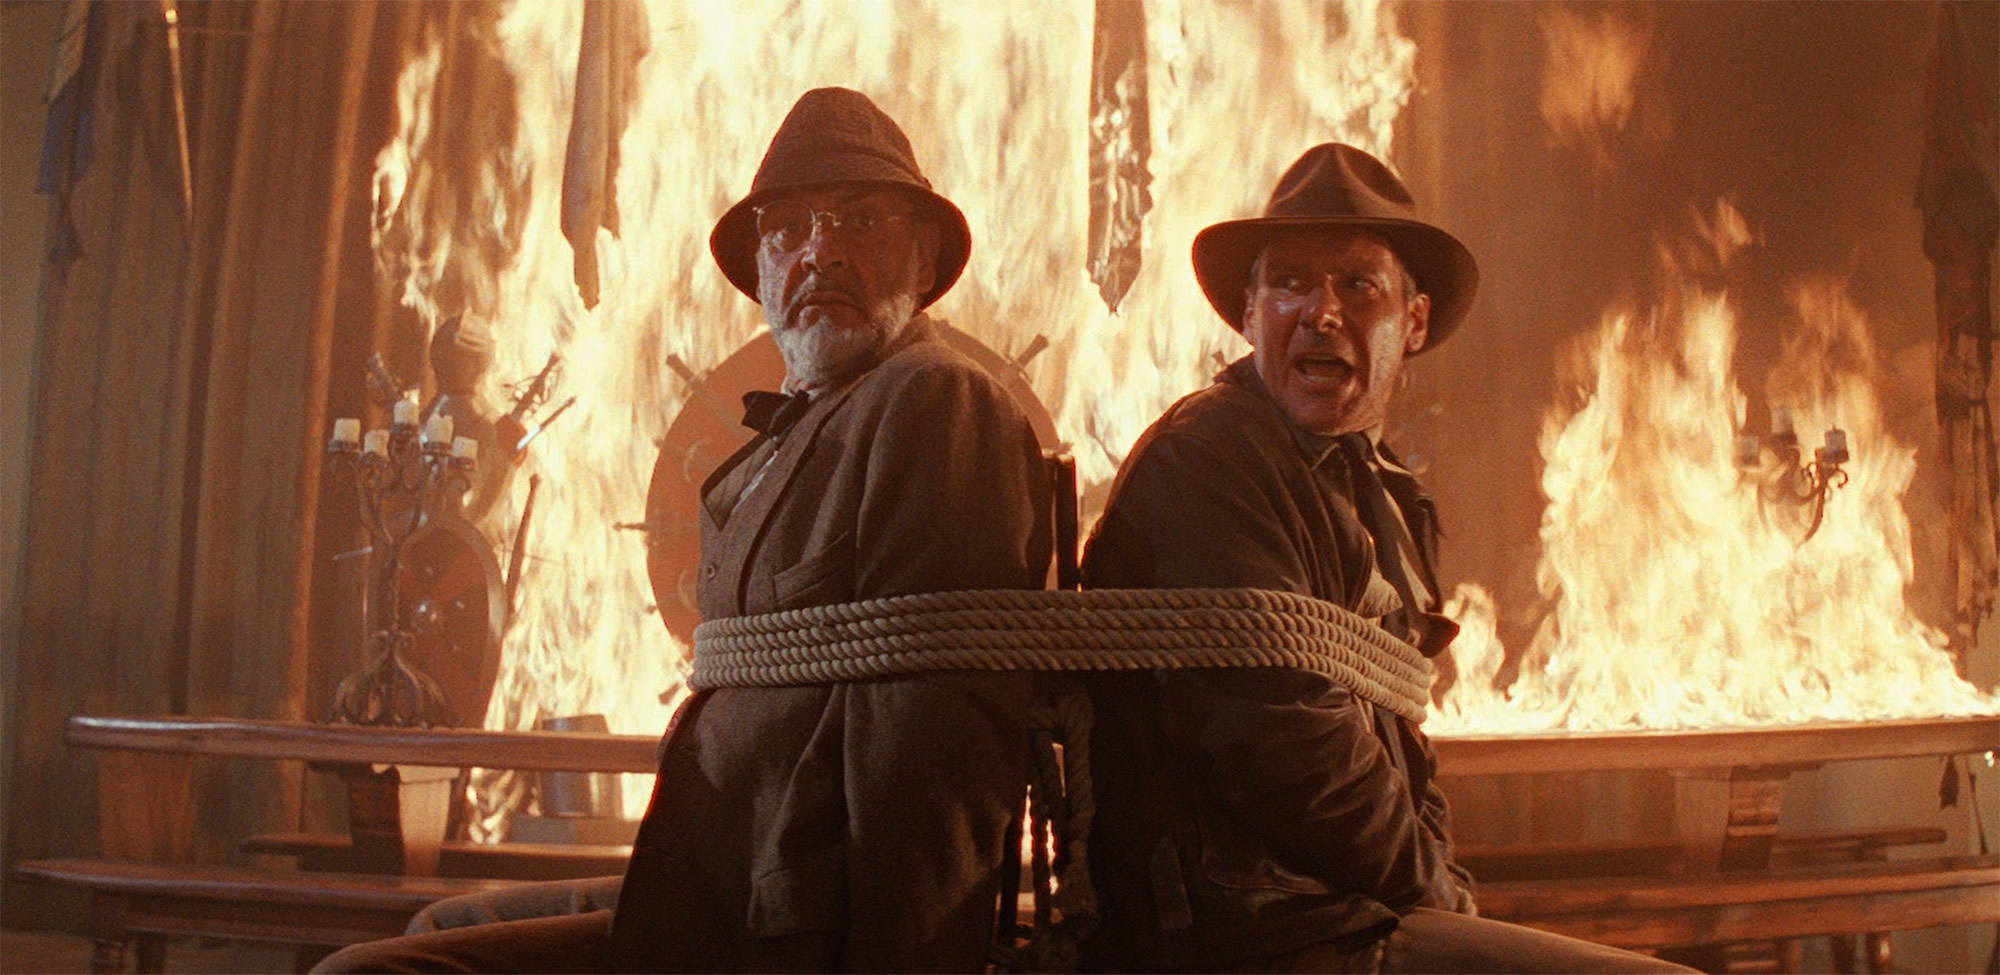 professor henry jones and indiana jones tied up, fire, Indiana Jones and The Last Crusade